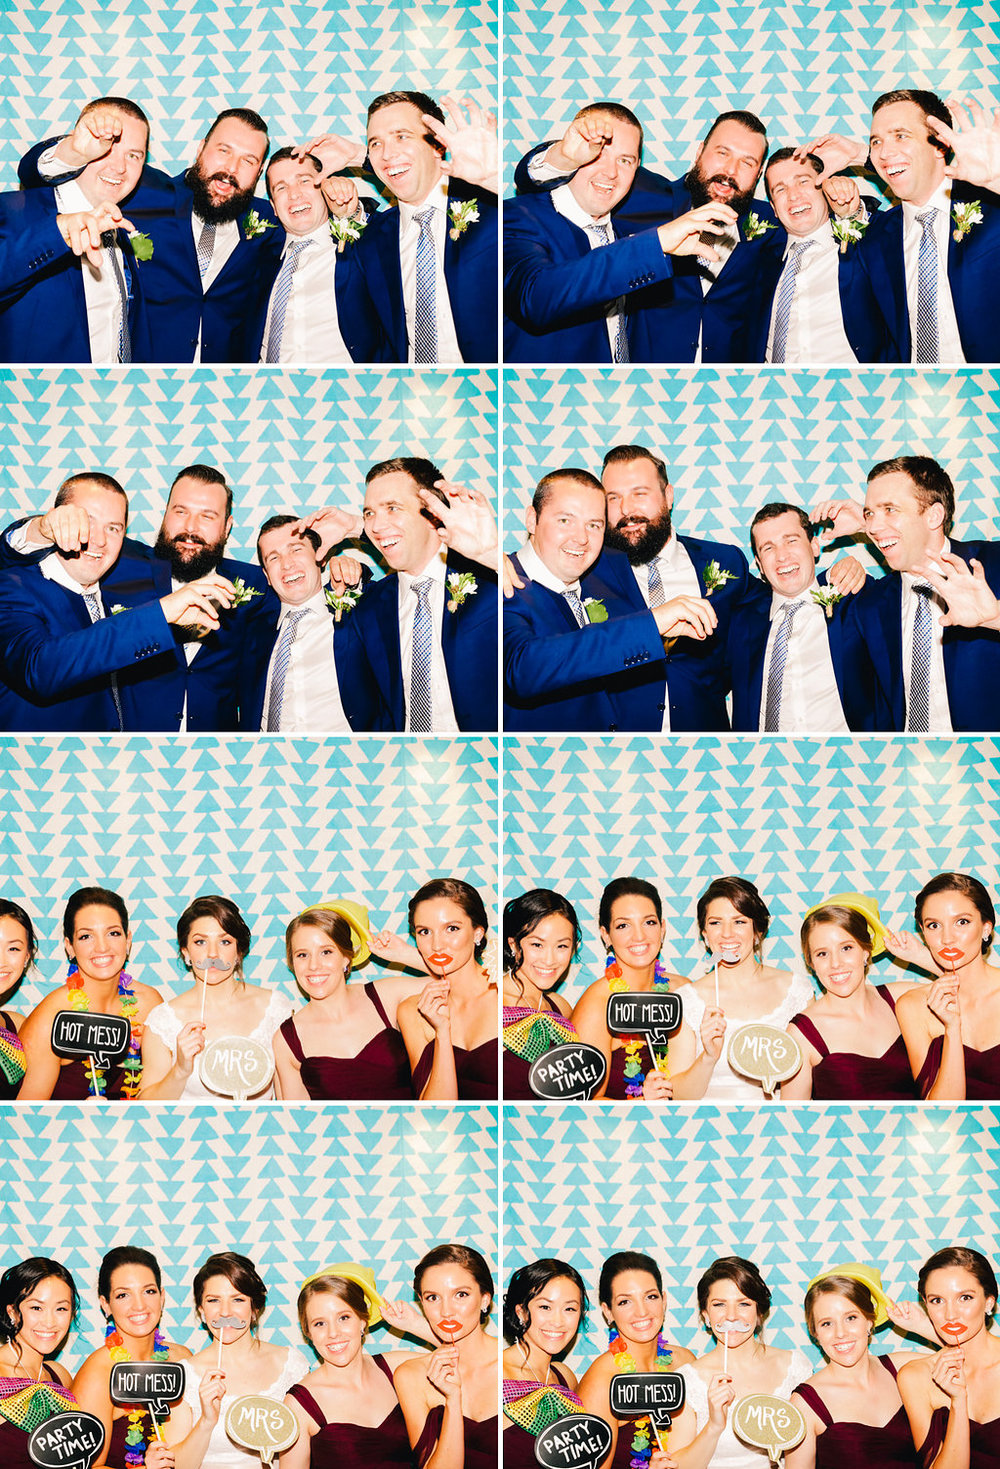 photobooth-027.jpg